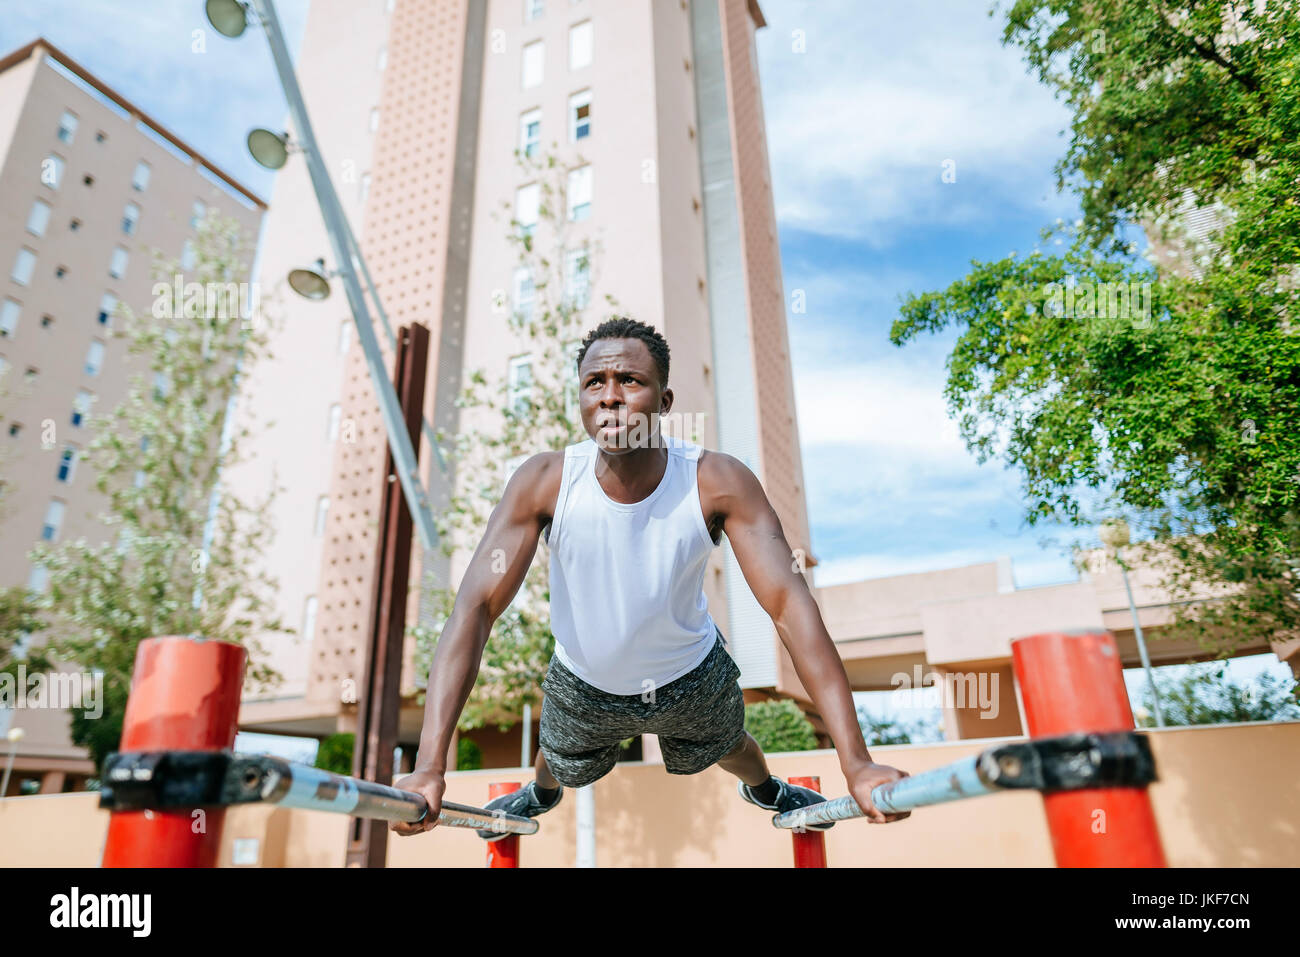 Man doing push-ups à l'extérieur Photo Stock